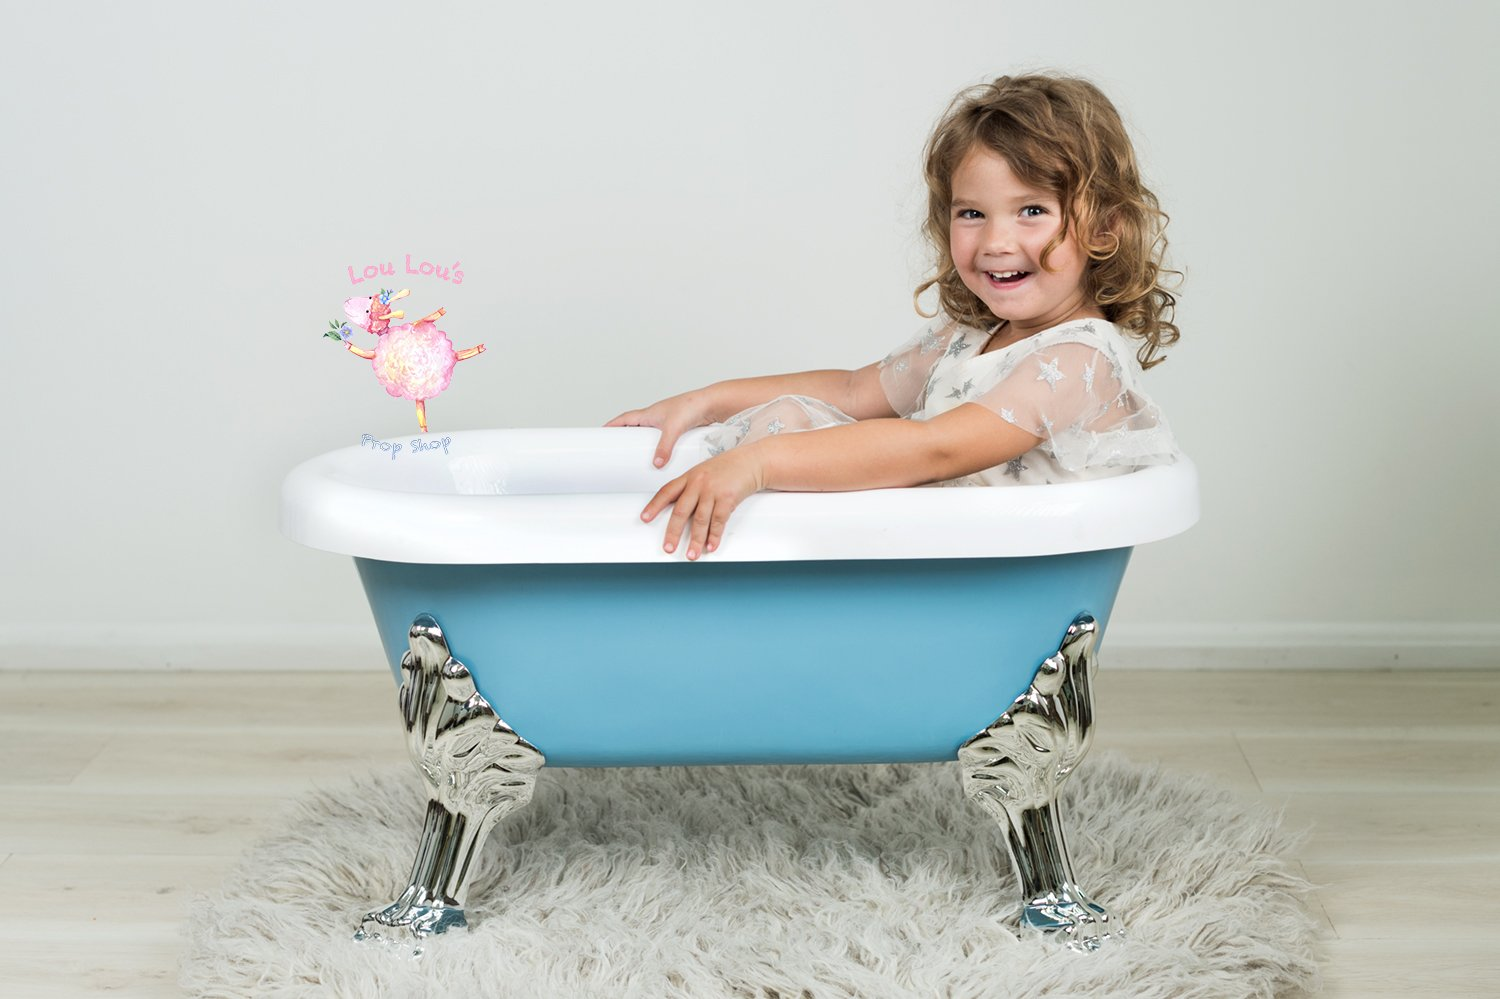 newborn photography props mini baby bathtub photography props for newborns an ebay. Black Bedroom Furniture Sets. Home Design Ideas